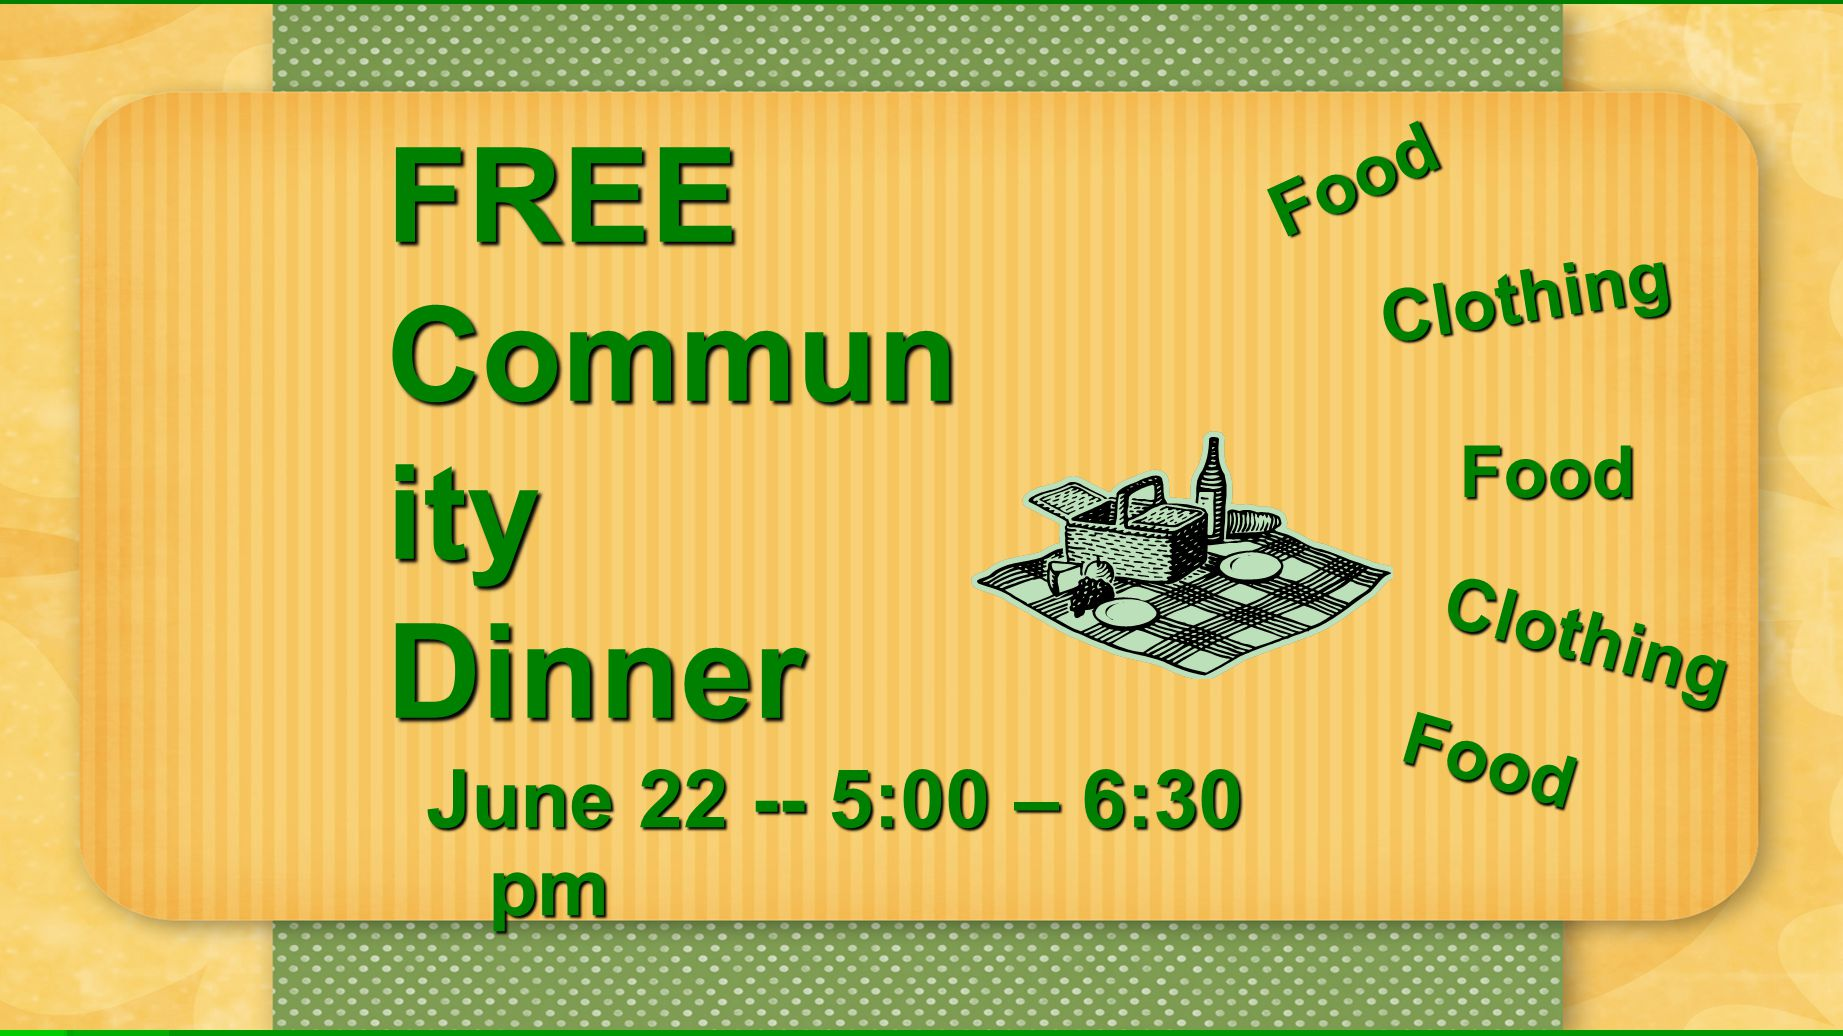 FREE Commun ity Dinner June 22 -- 5:00 – 6:30 pm Food Food Food Clothing Clothing